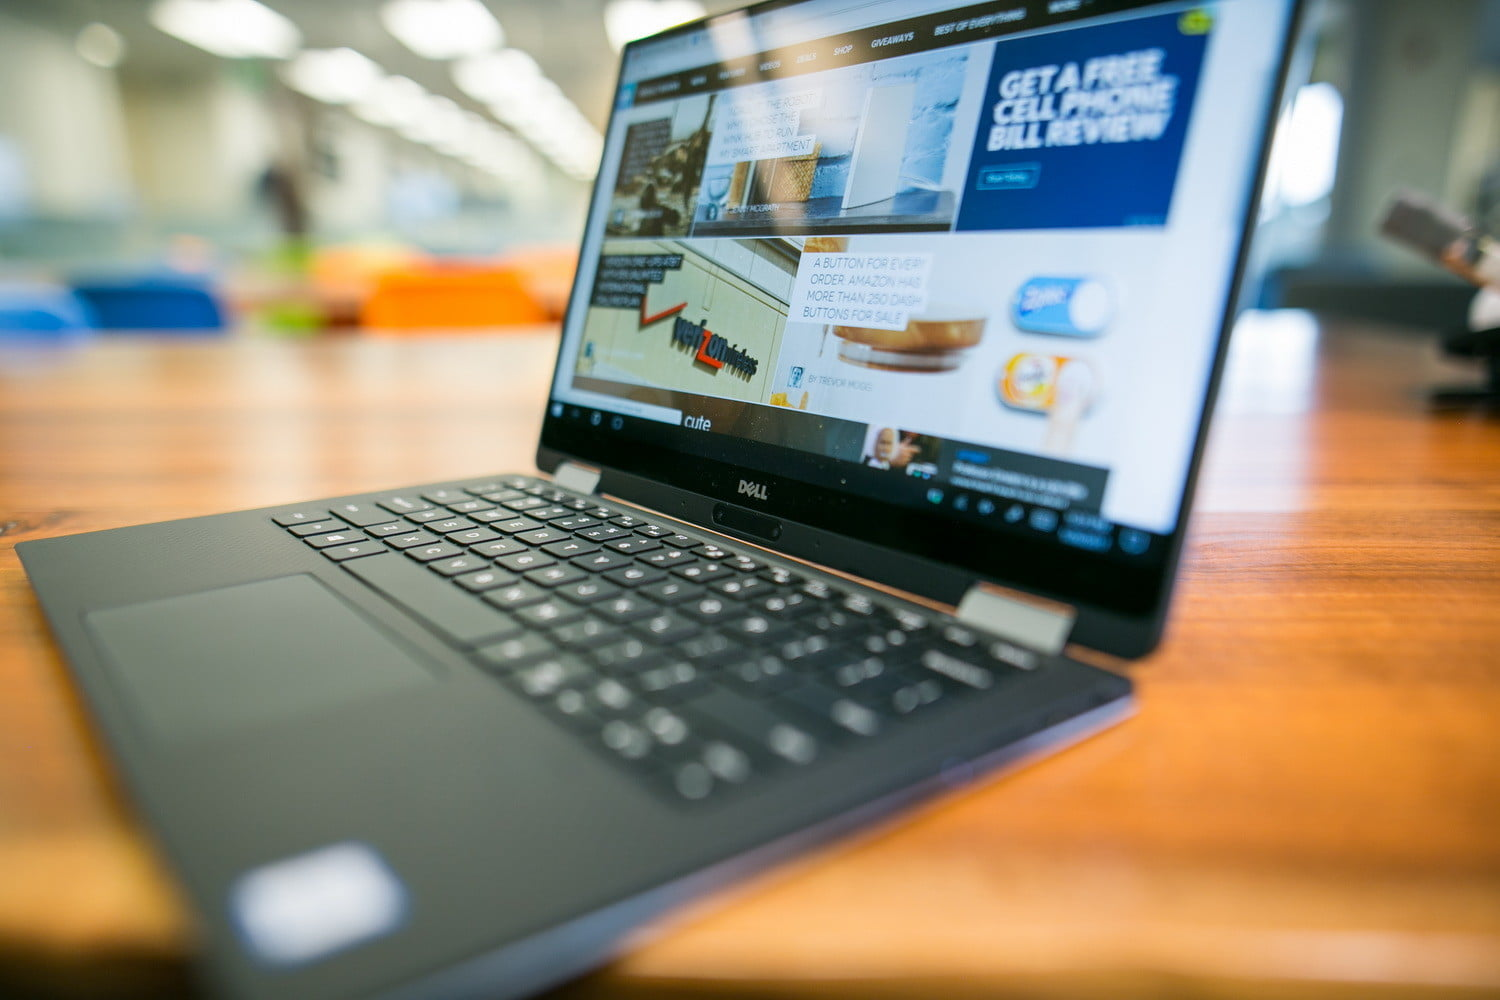 These Are the Best Linux Laptops You Can Buy | Digital Trends